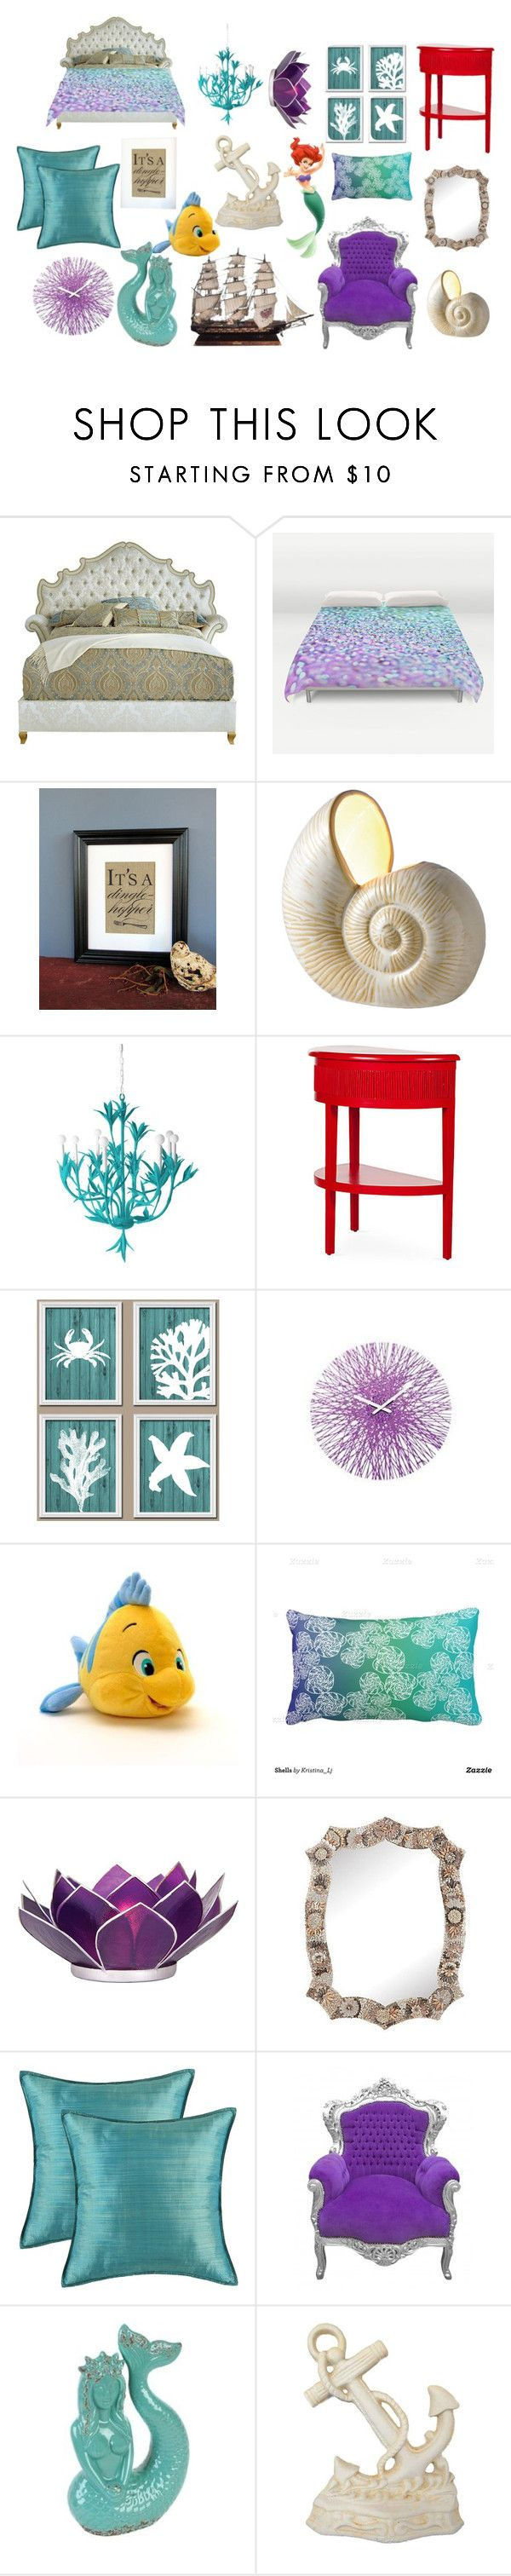 """The Little Mermaid Inspired Bedroom"" by madalynkw ❤ liked on Polyvore featuring interior, interiors, interior design, home, home decor, interior decorating, Haute House, Dot & Bo, Stray Dog Designs and David Francis Furniture"